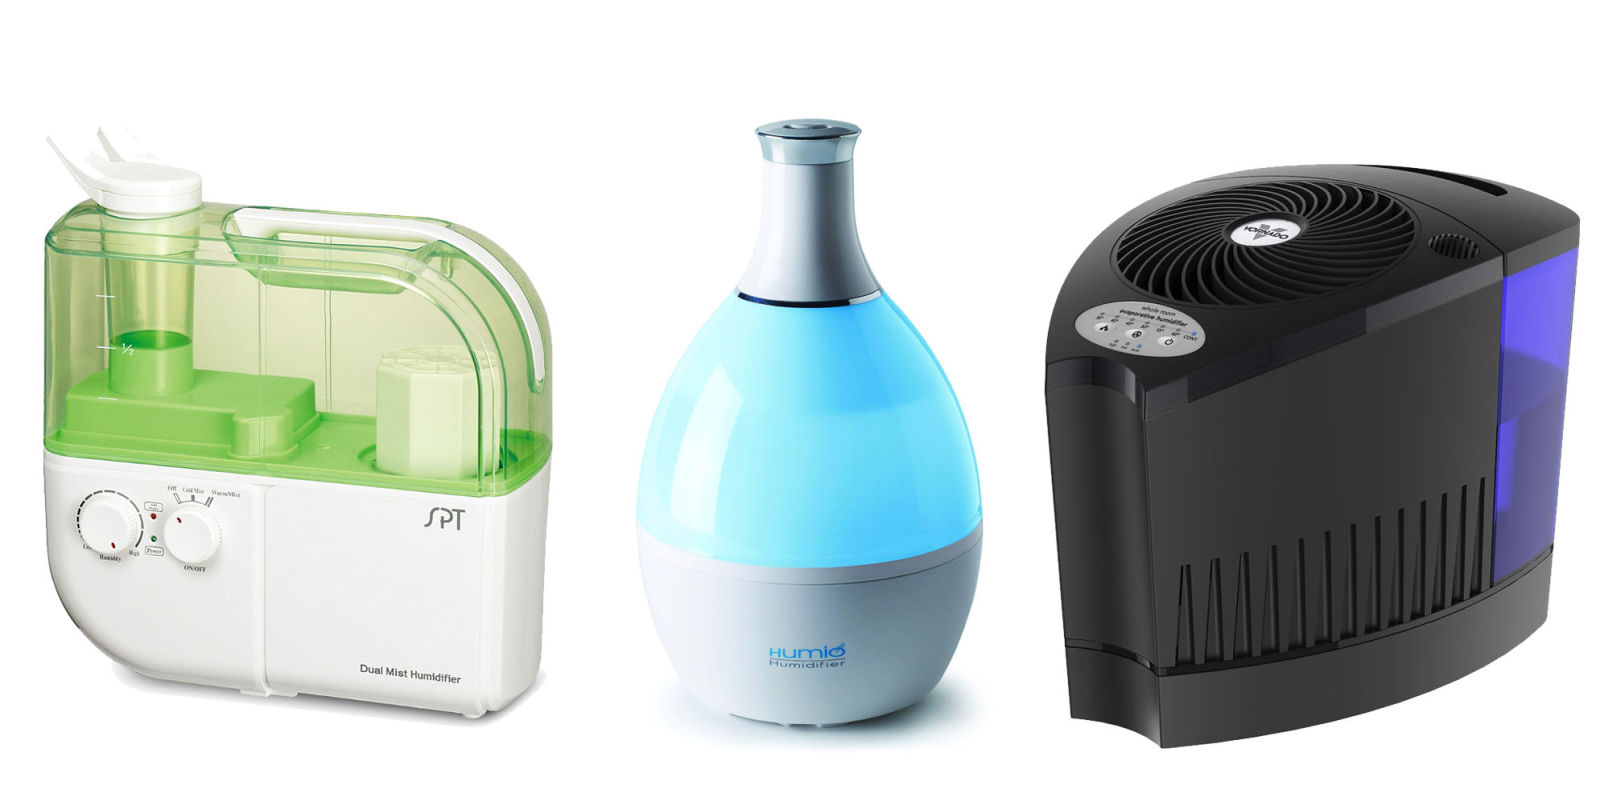 2016 single room humidifiers under 100 cheap cool mist for Small room humidifier